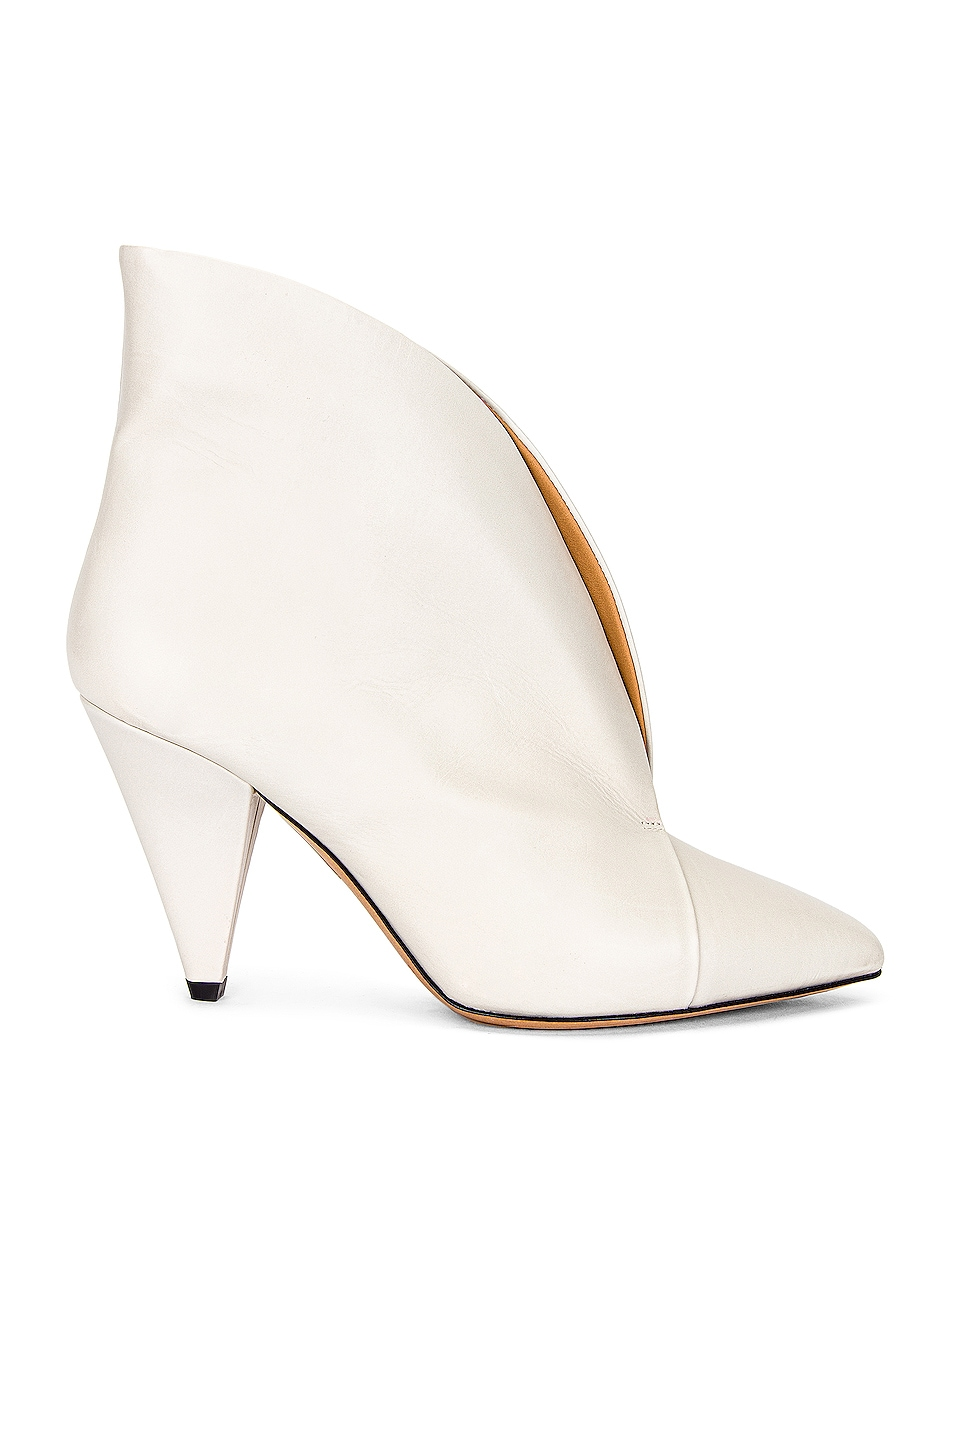 Image 1 of Isabel Marant Arfee Boot in White